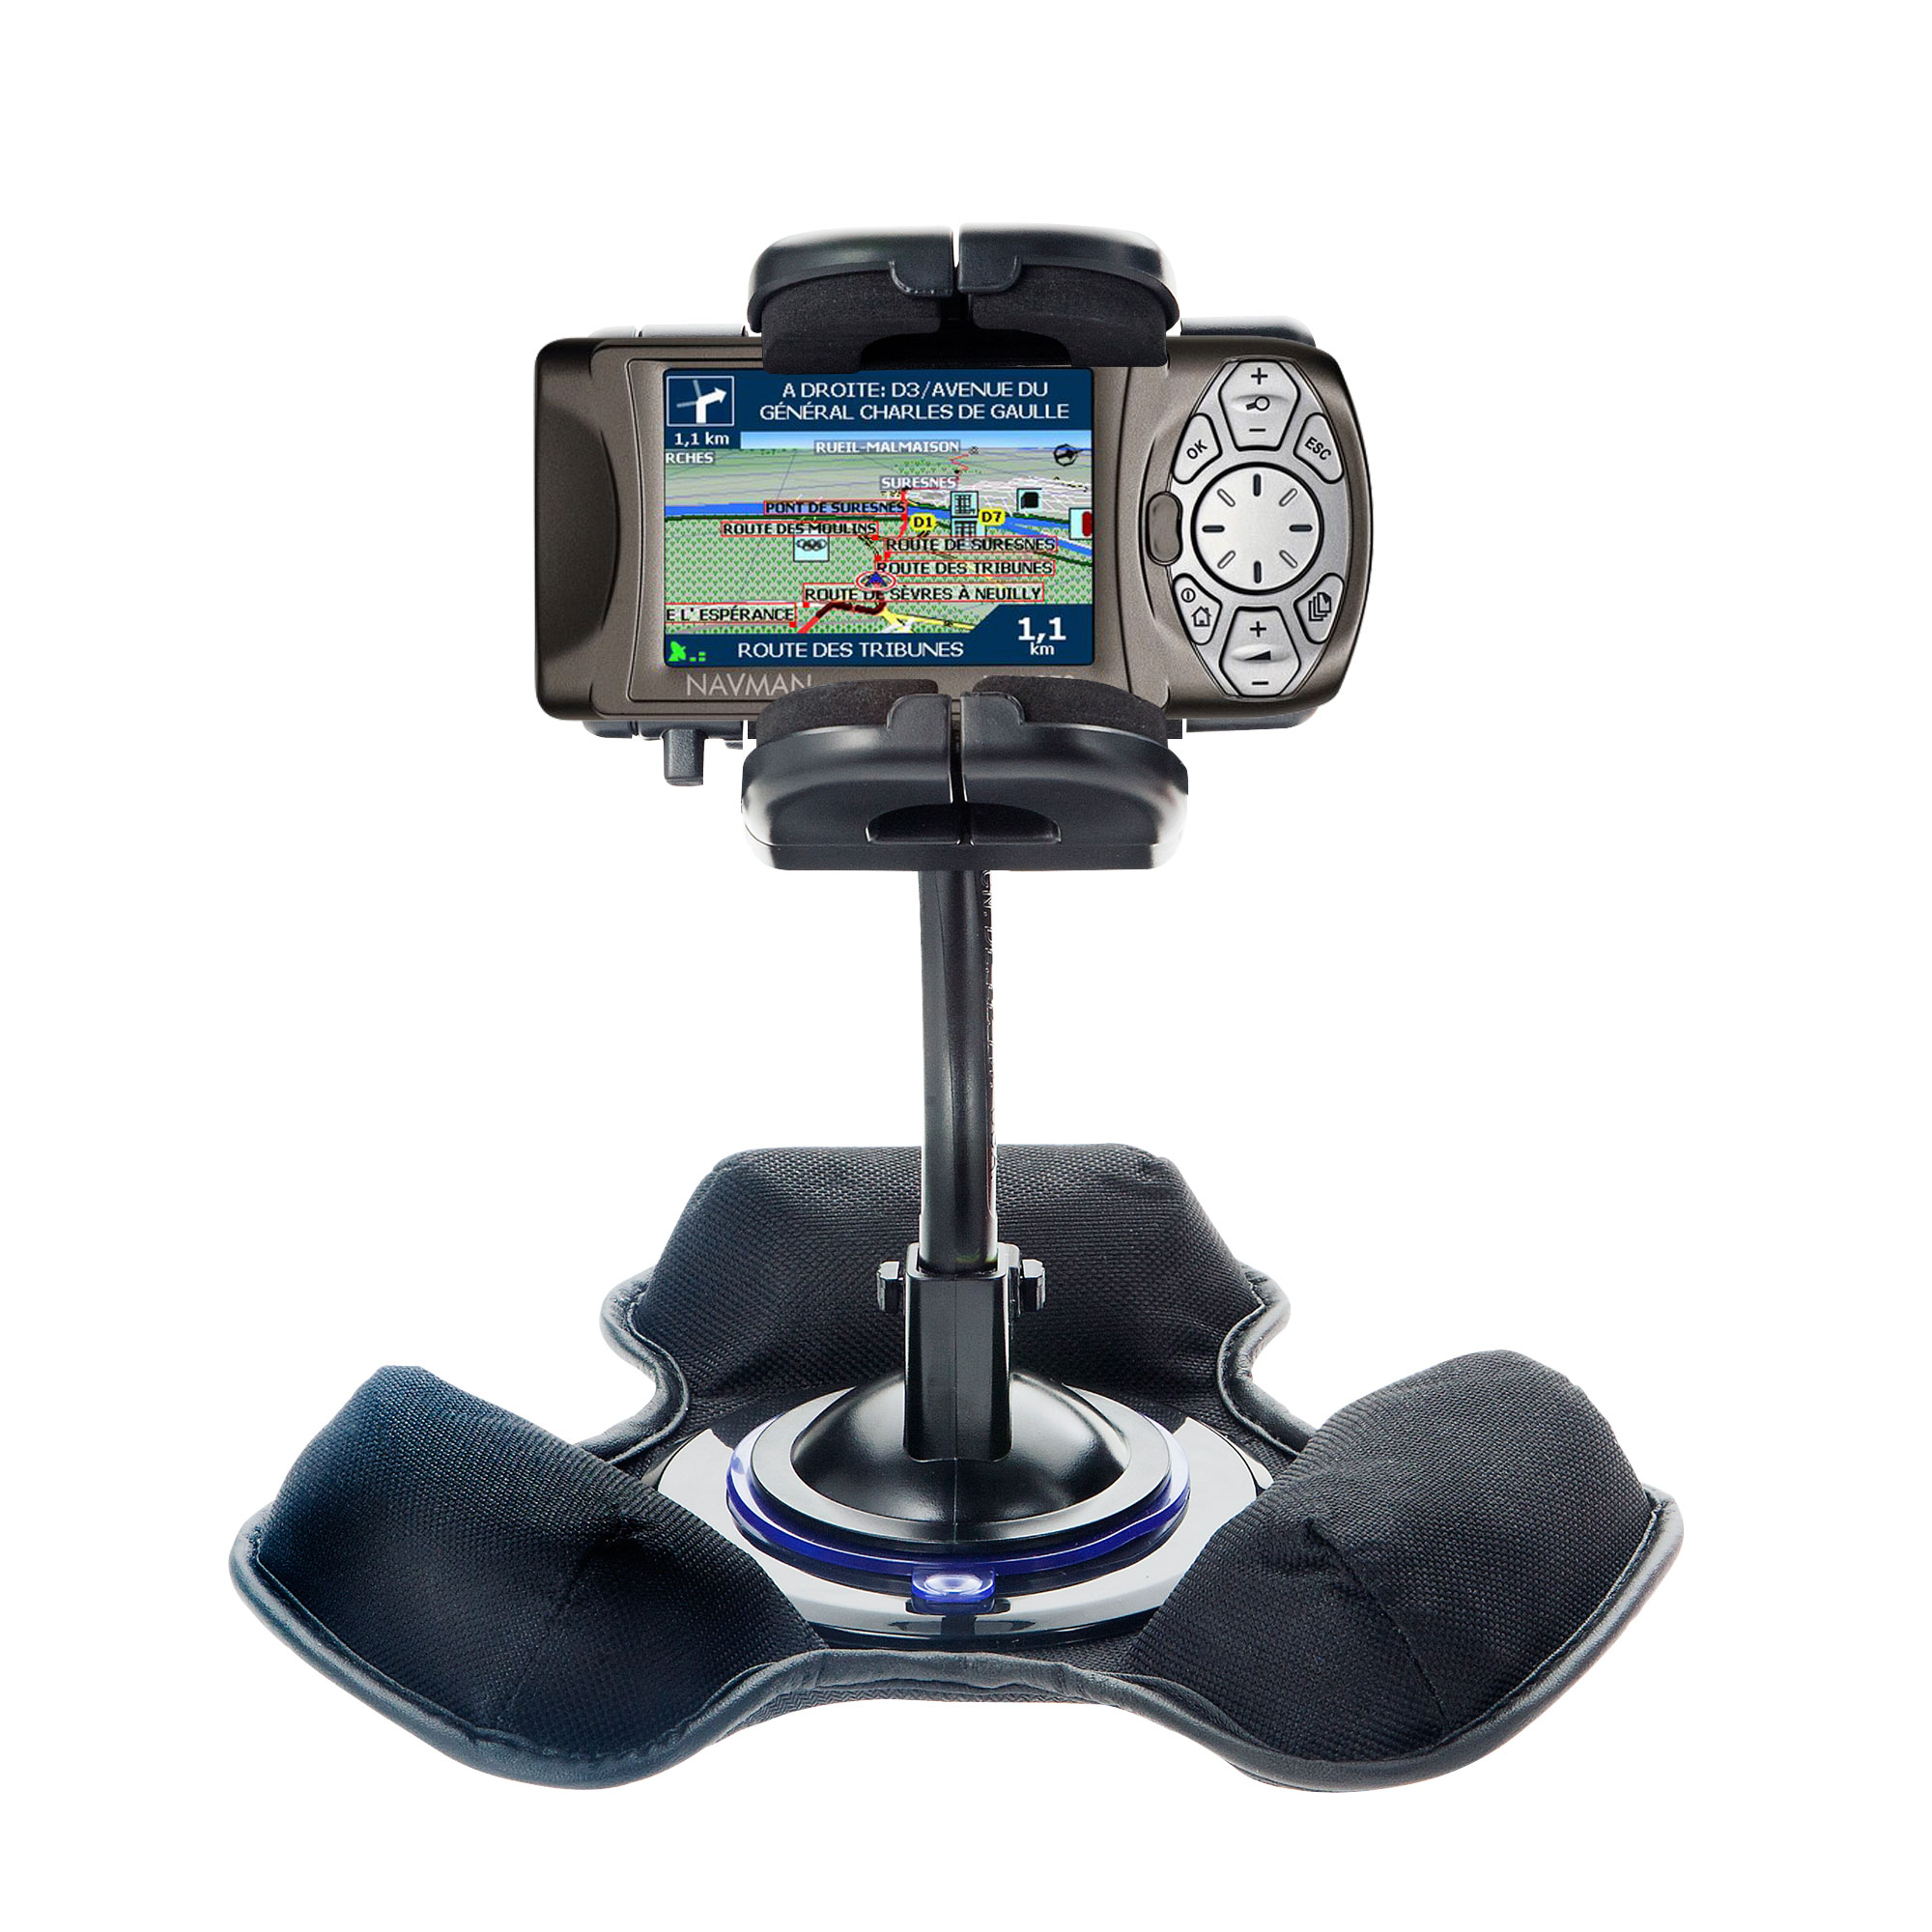 Dash and Windshield Holder compatible with the Navman iCN 650